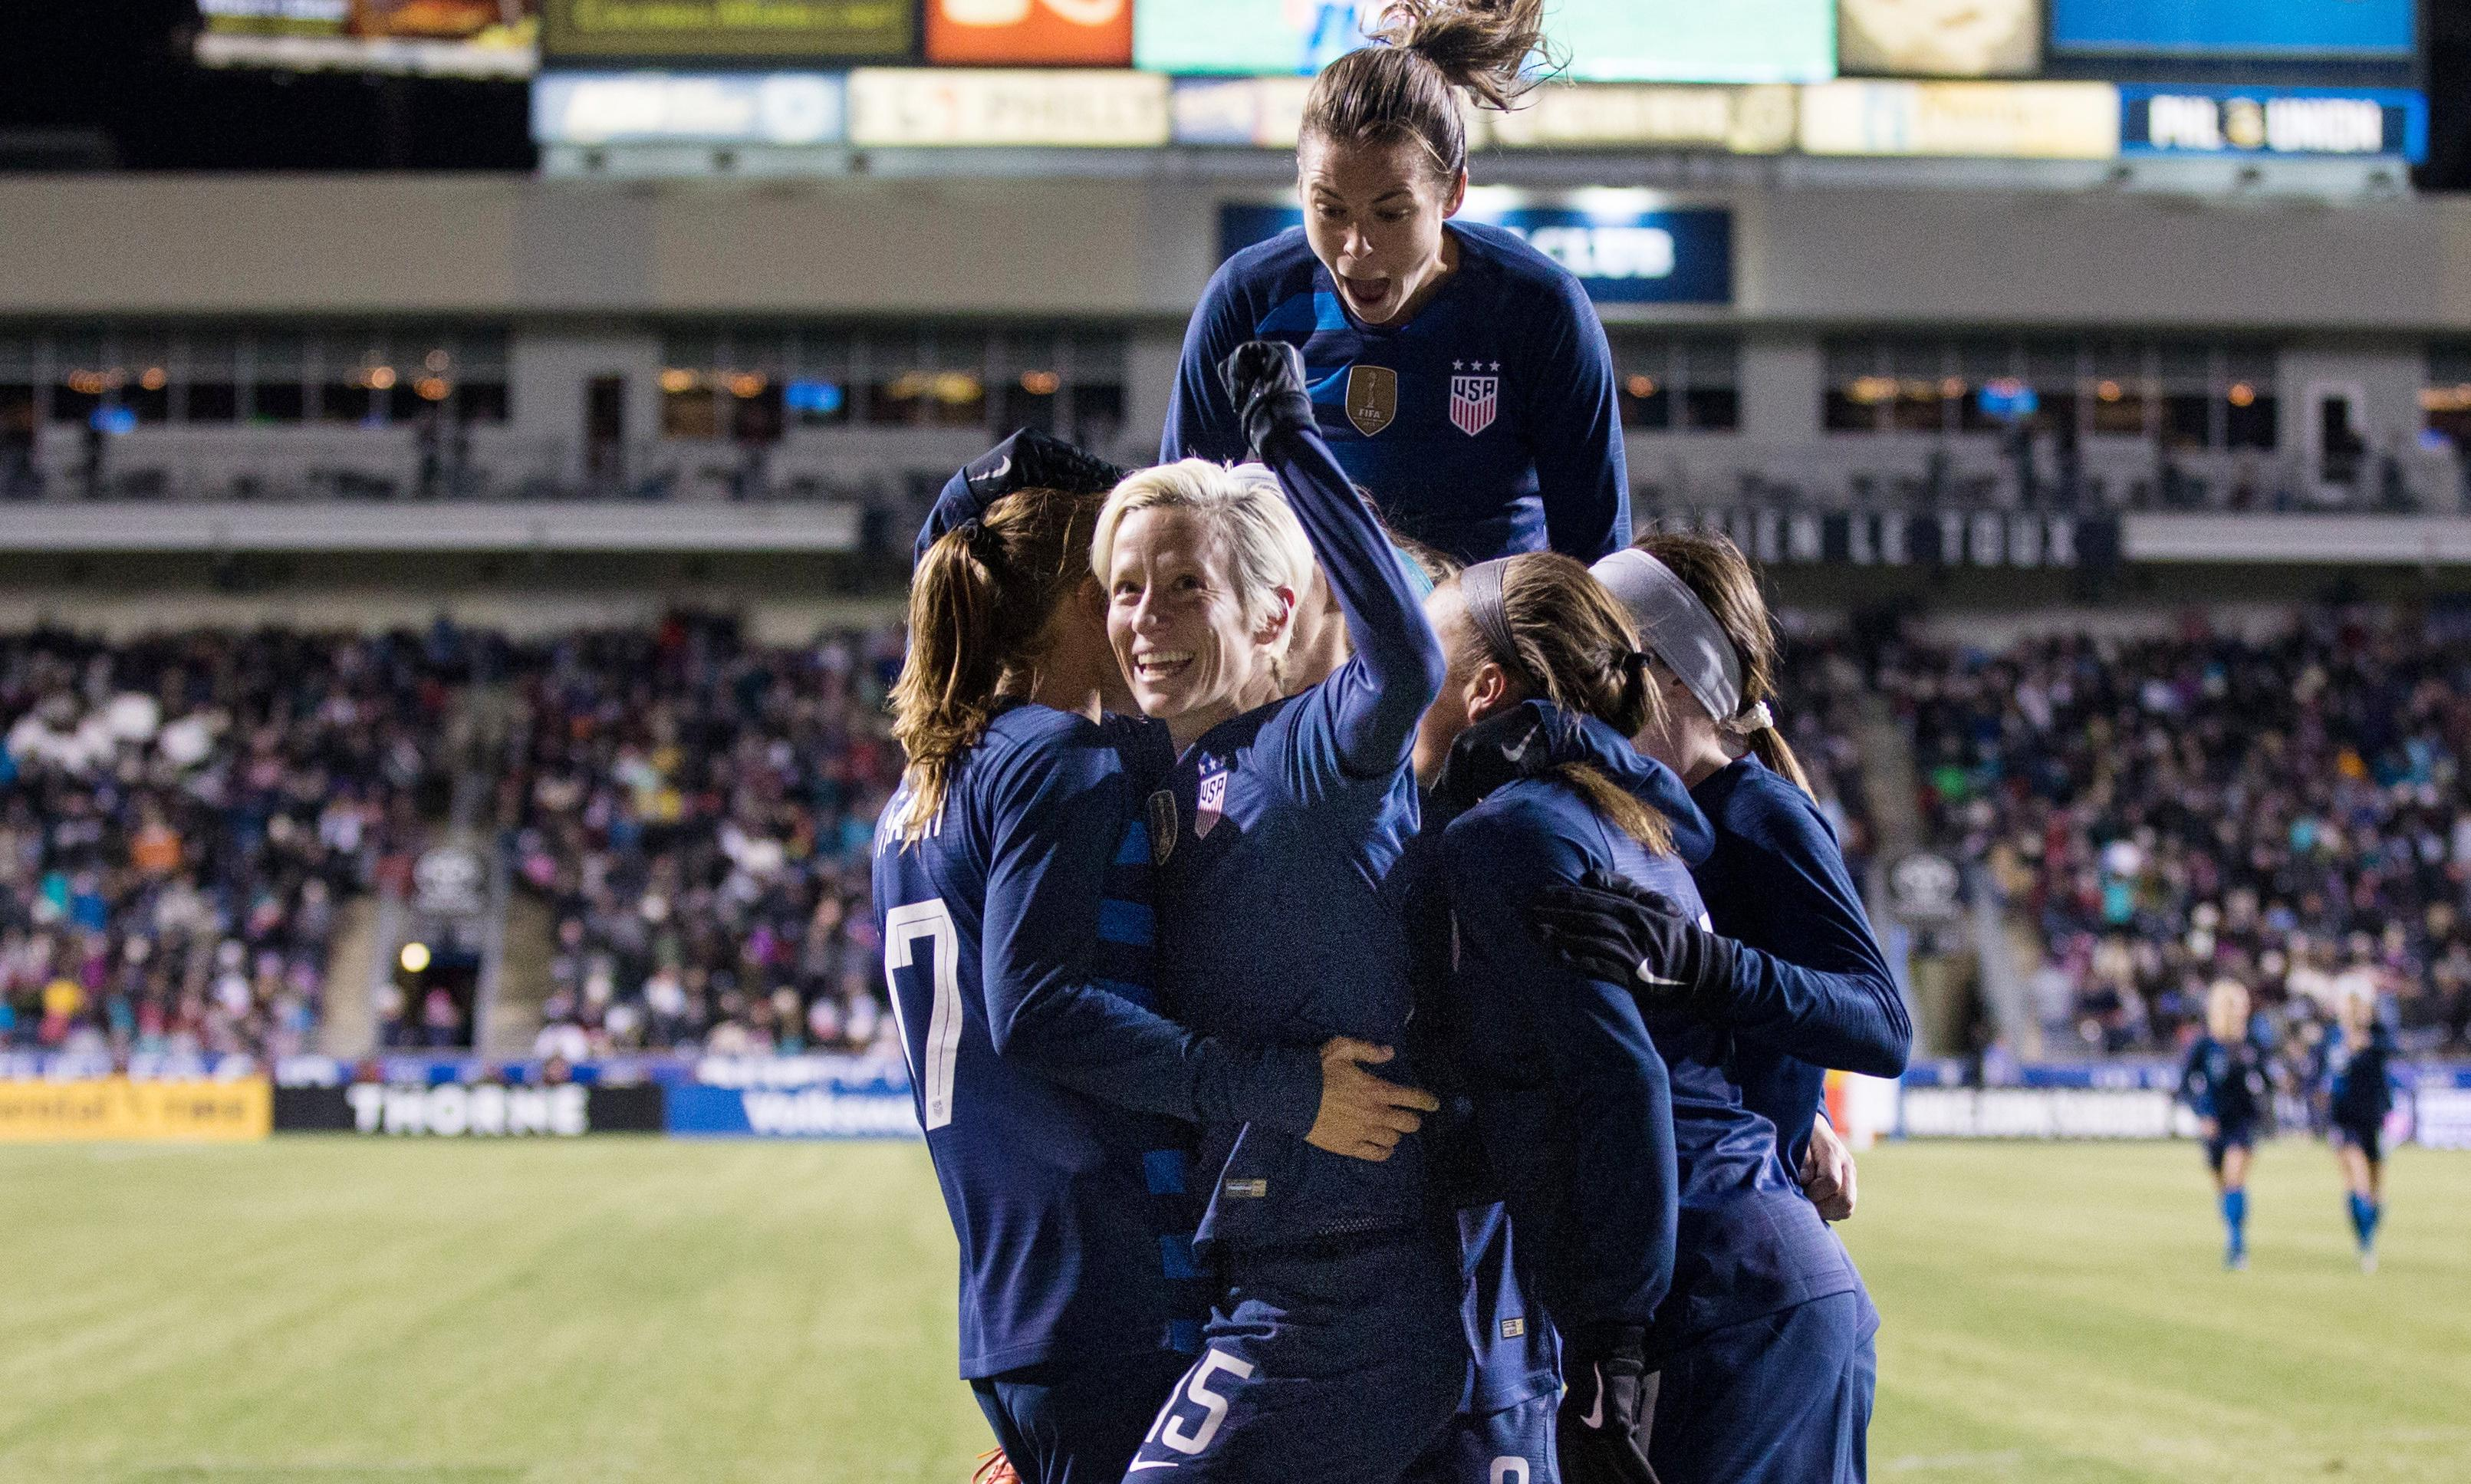 The problems that may stop the US retaining the Women's World Cup